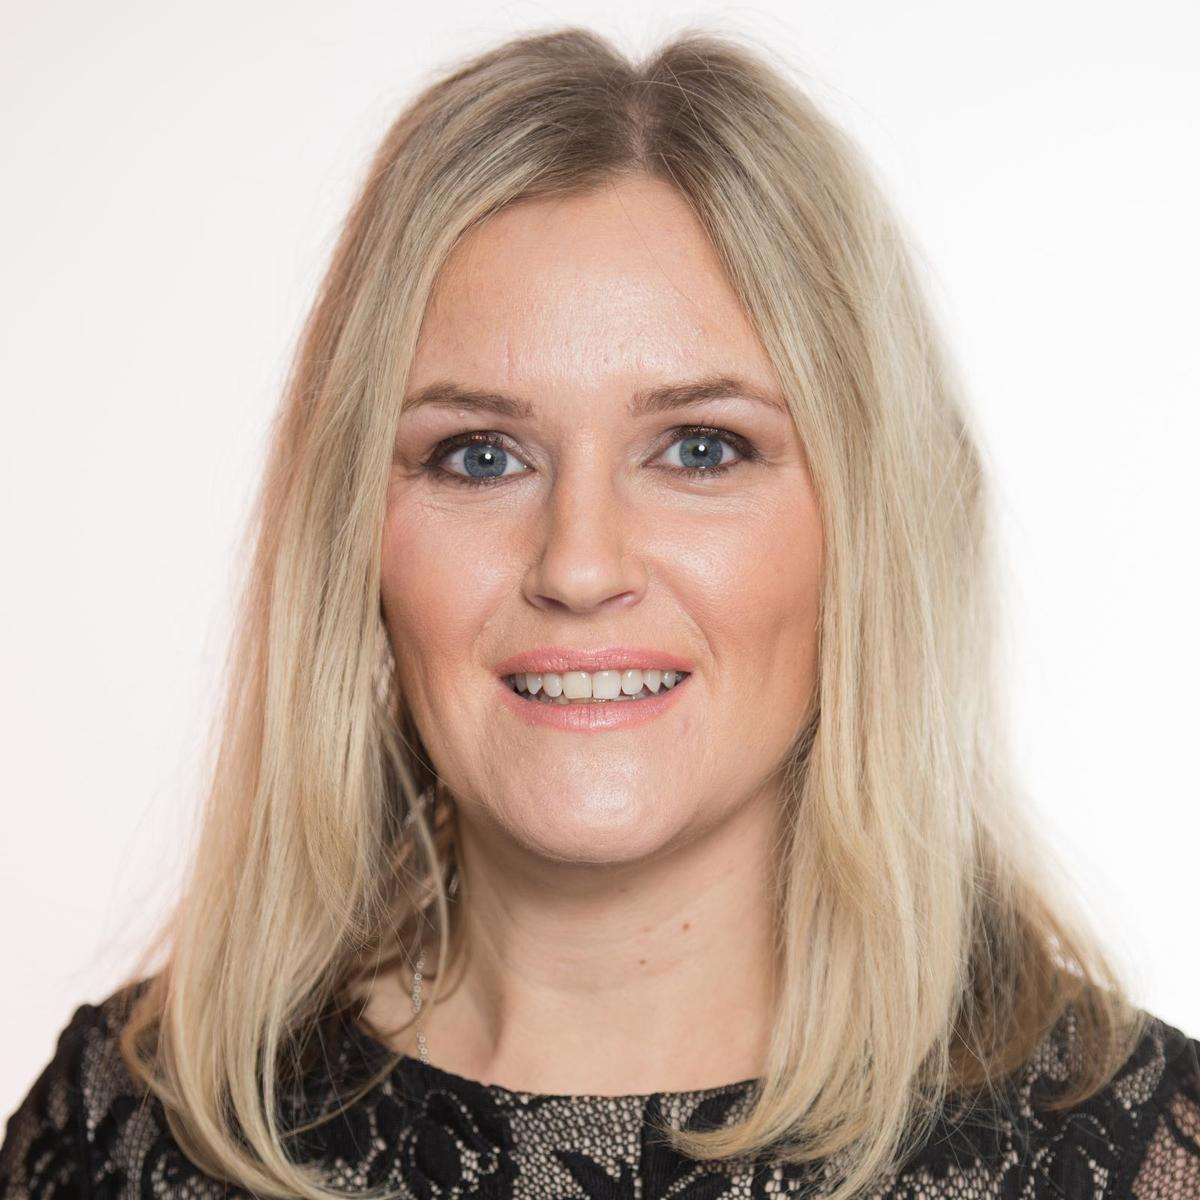 Genting UK Director of Technology and Change Helen Brittain